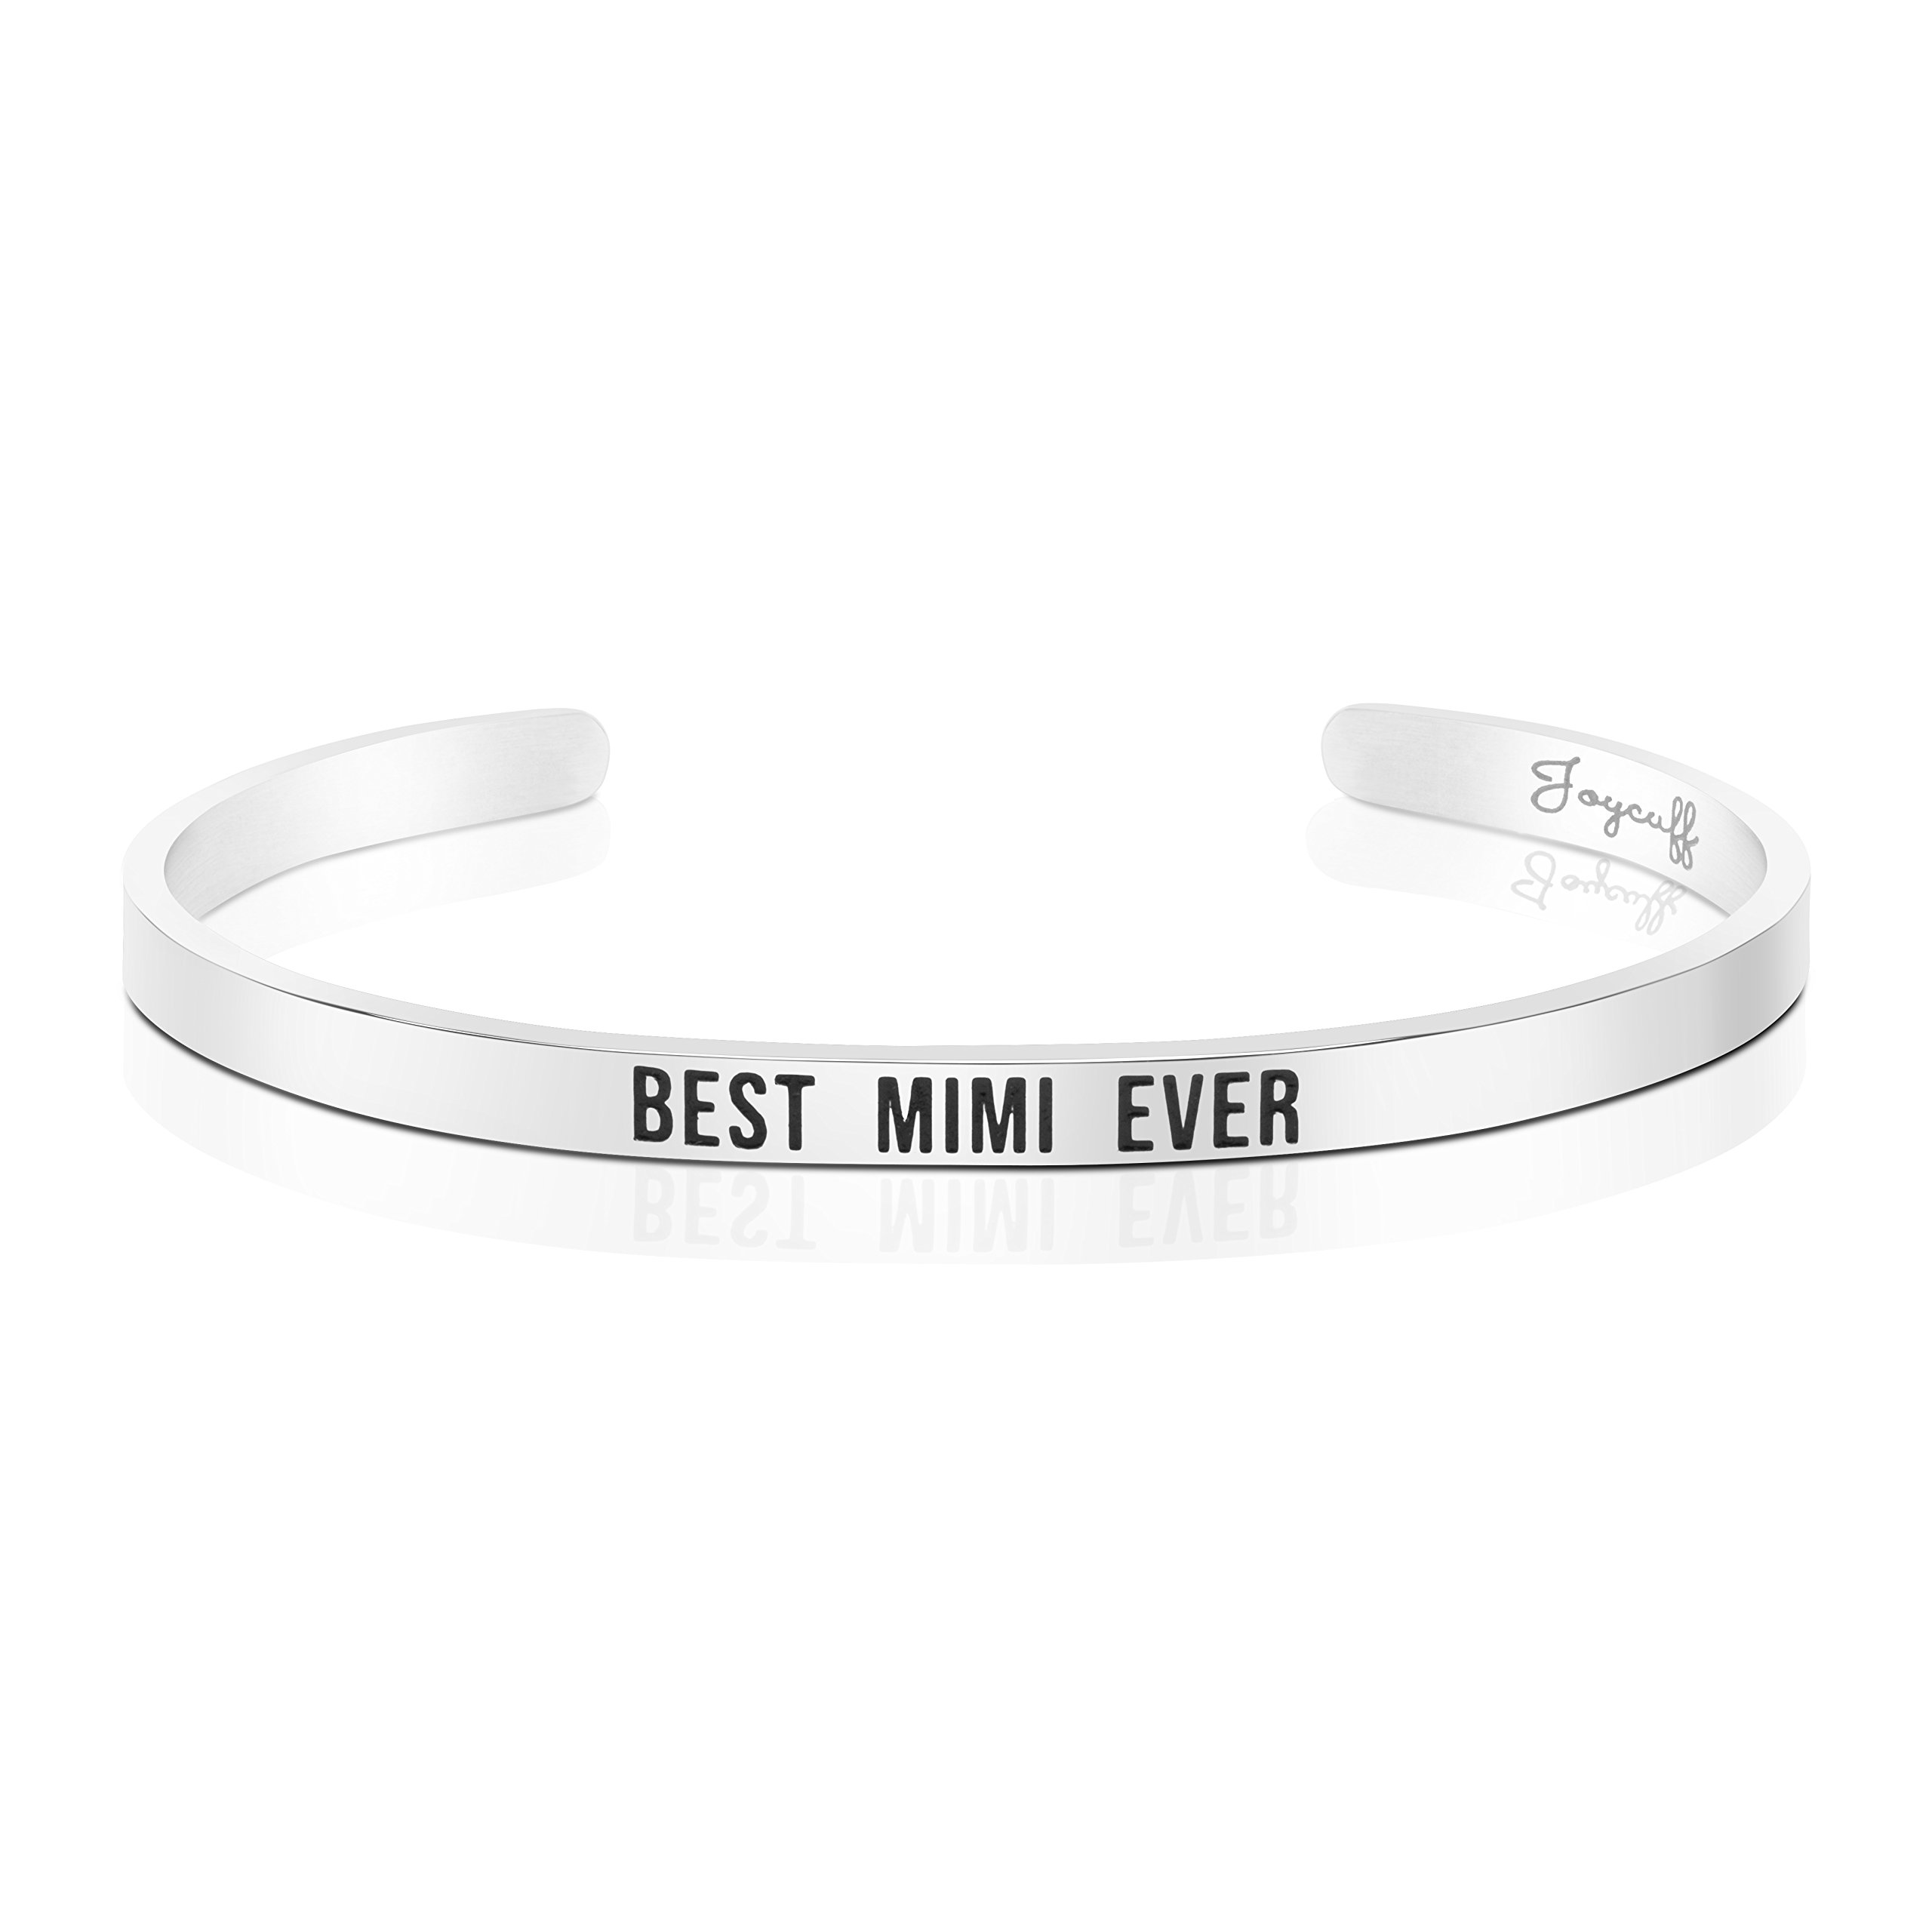 Joycuff Best Mimi Ever Bracelet Jewelry Gifts for Grandma Mantra Cuff Bracelets Bangle